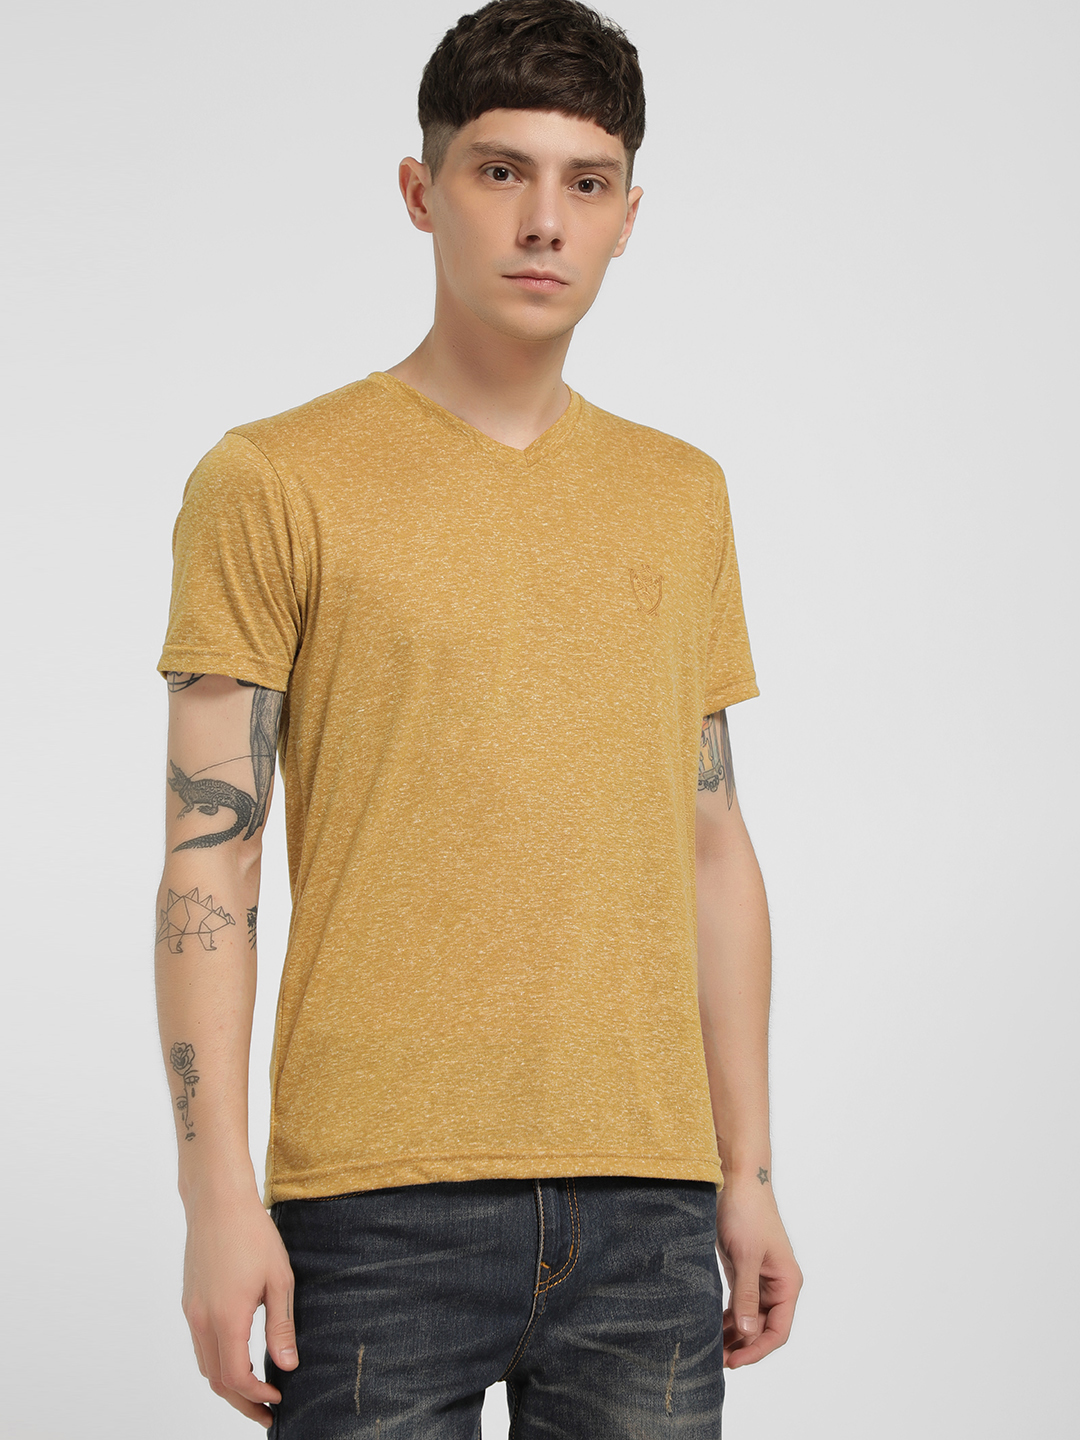 SCULLERS Yellow Short Sleeve V-Neck T-Shirt 1